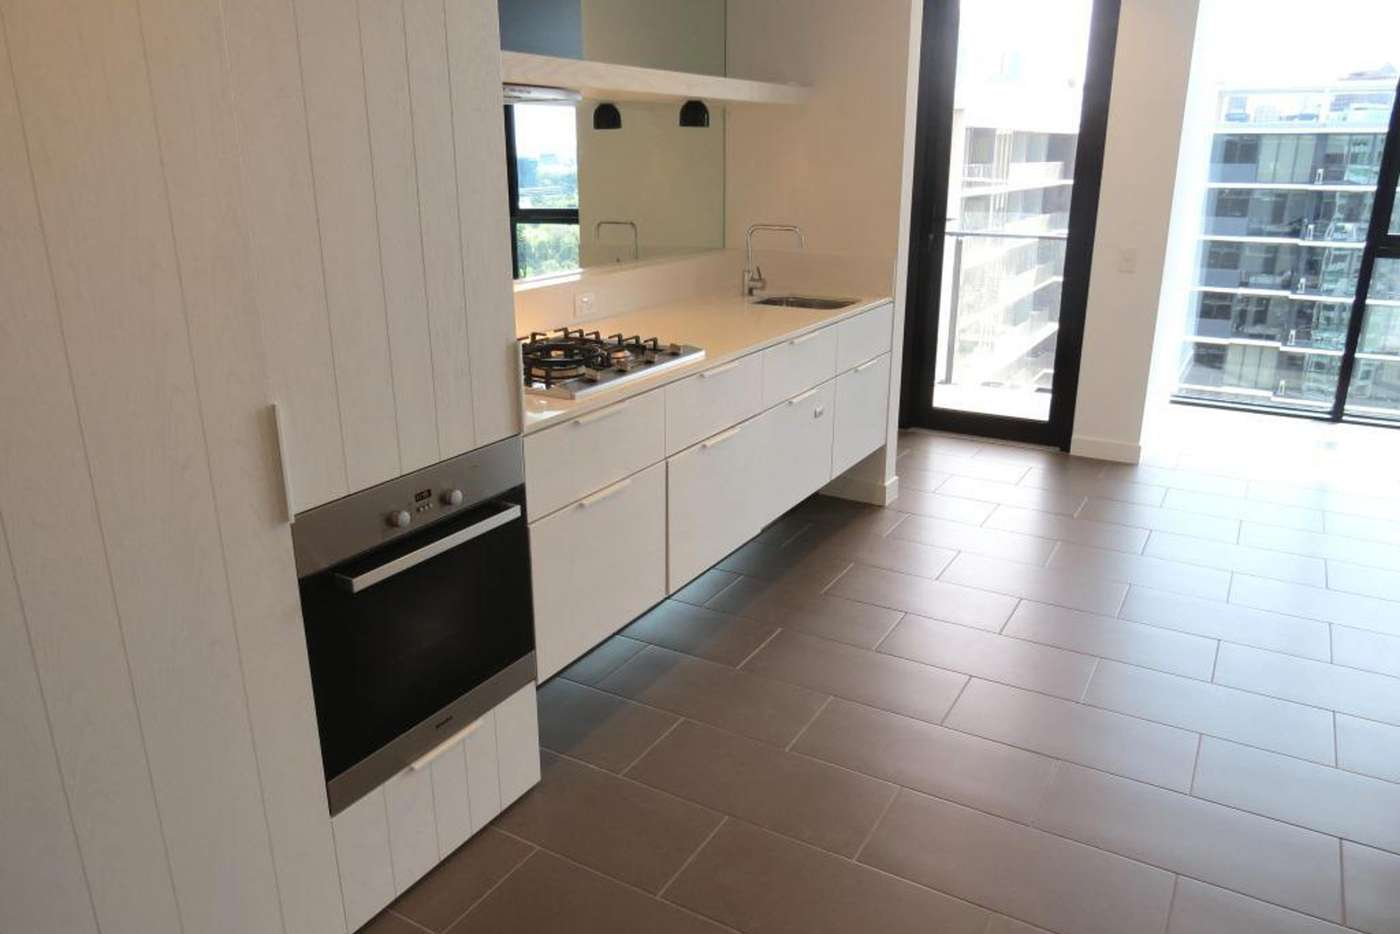 Main view of Homely apartment listing, 2217/22 Dorcas Street, Southbank VIC 3006